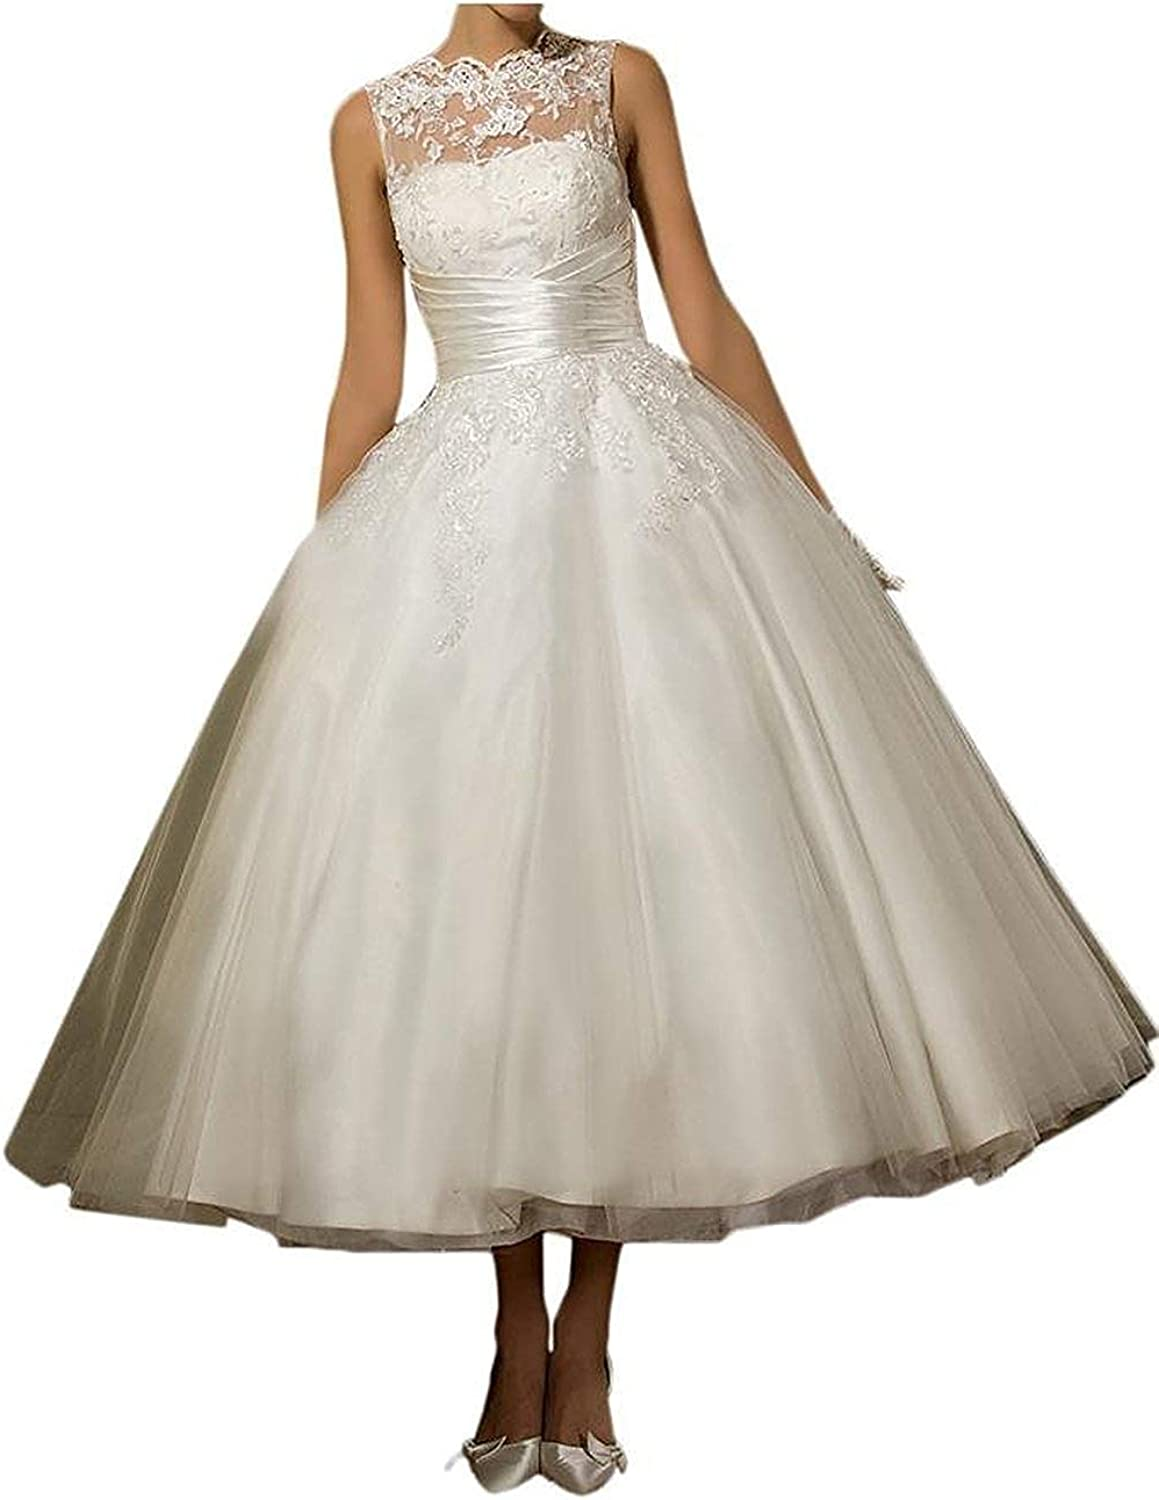 Fannybrides 1950s Vintage Lace Scoop Sleeveless Tea Length Tulle Bride Ball Gown Wedding Dresses